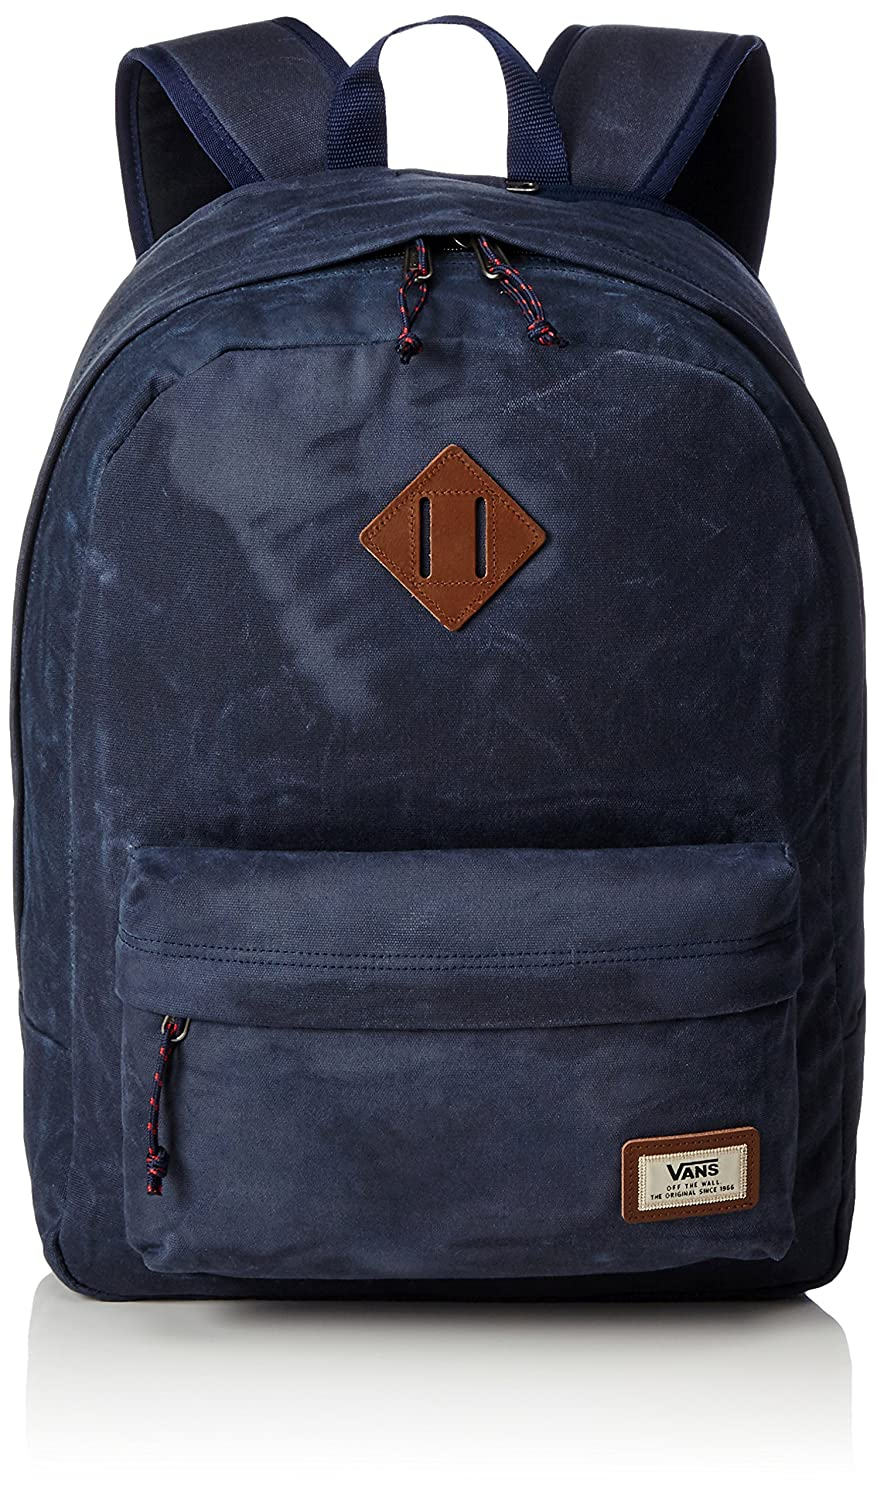 Vans Old Skool Plus Backpack Mochila, 44 cm, 23 L, Dress blaus Heather: Amazon.es: Deportes y aire libre